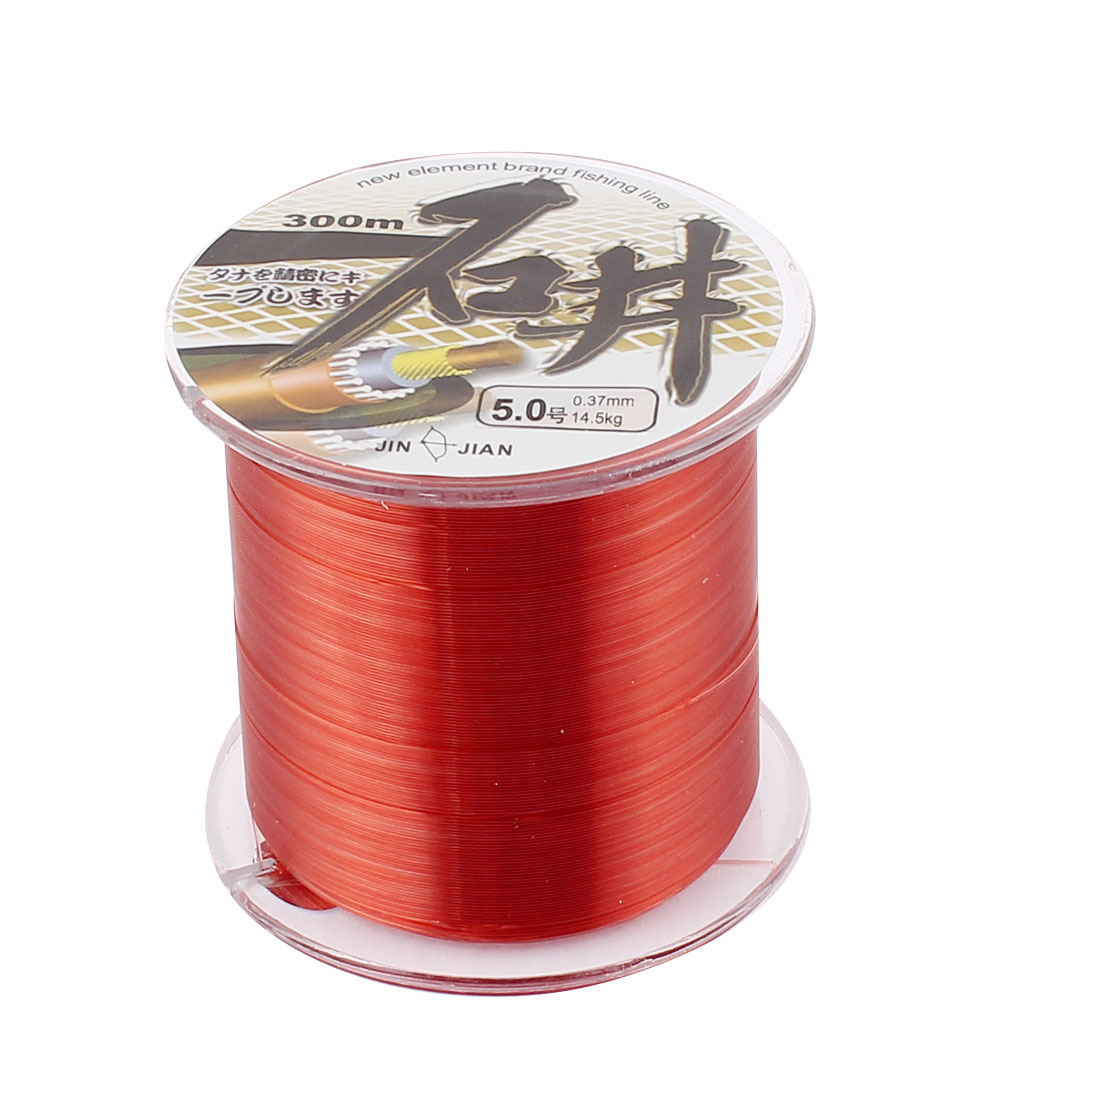 Outdoor Camping 0.37mm Dia 300M 32LB Salt Fresh Water Nylon Fishing Line Brown